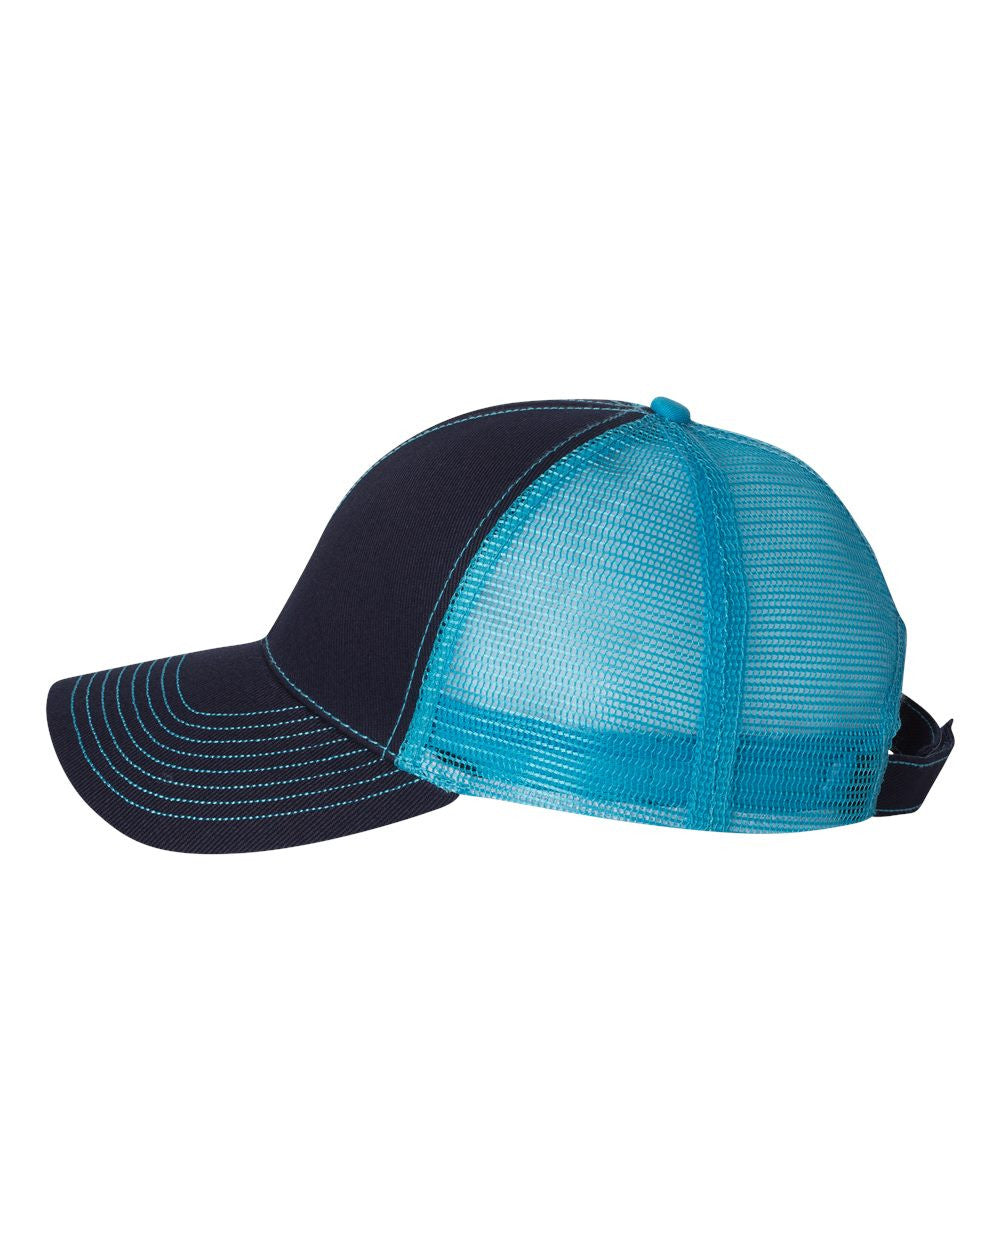 6185b92be99 ... Side View Custom Embroidered Light Blue and Black Mesh Hat Mega Cap  7641 ...